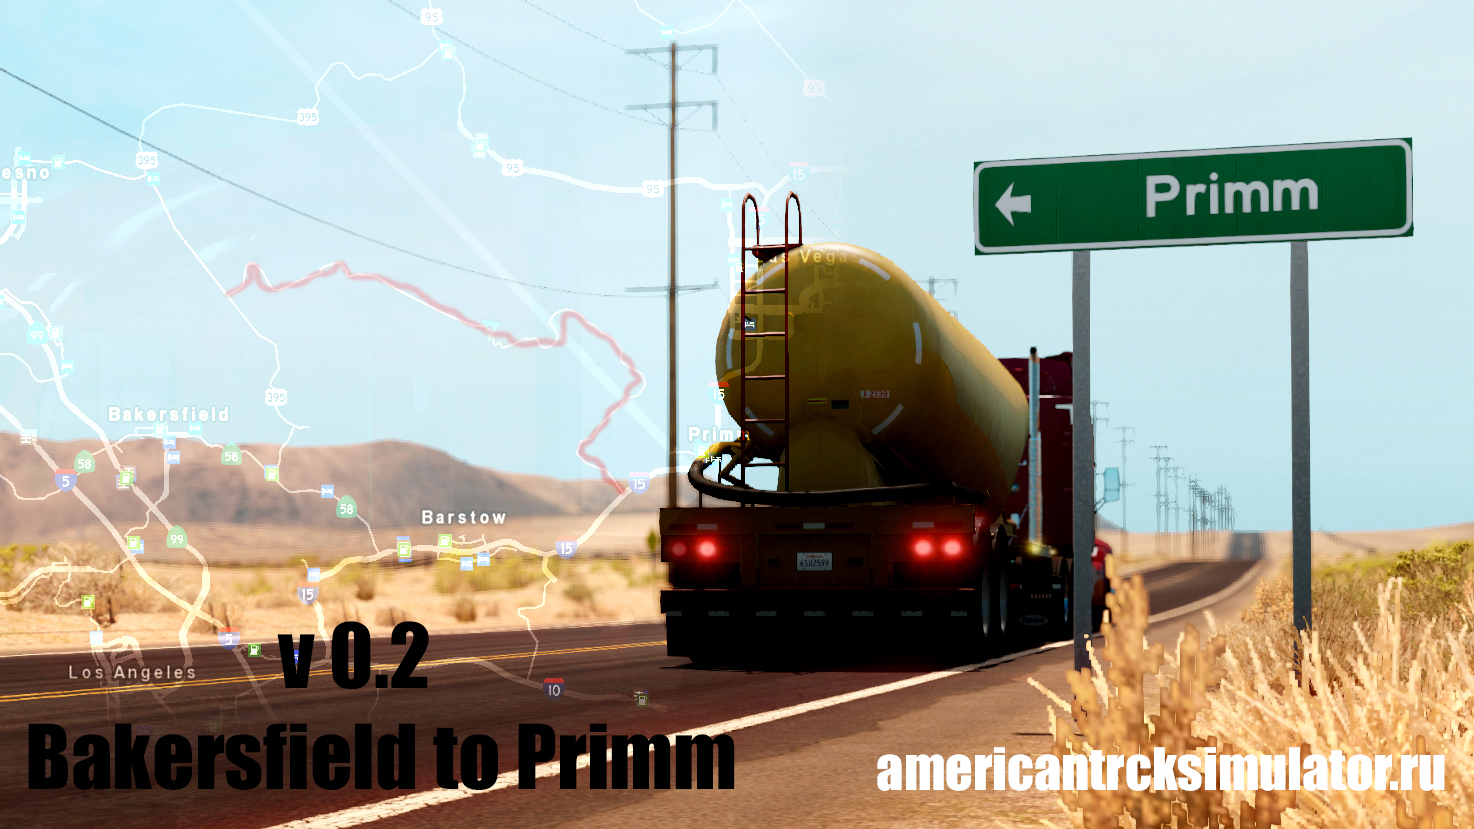 Карта Bakersfield to Primm offroad v 0.2